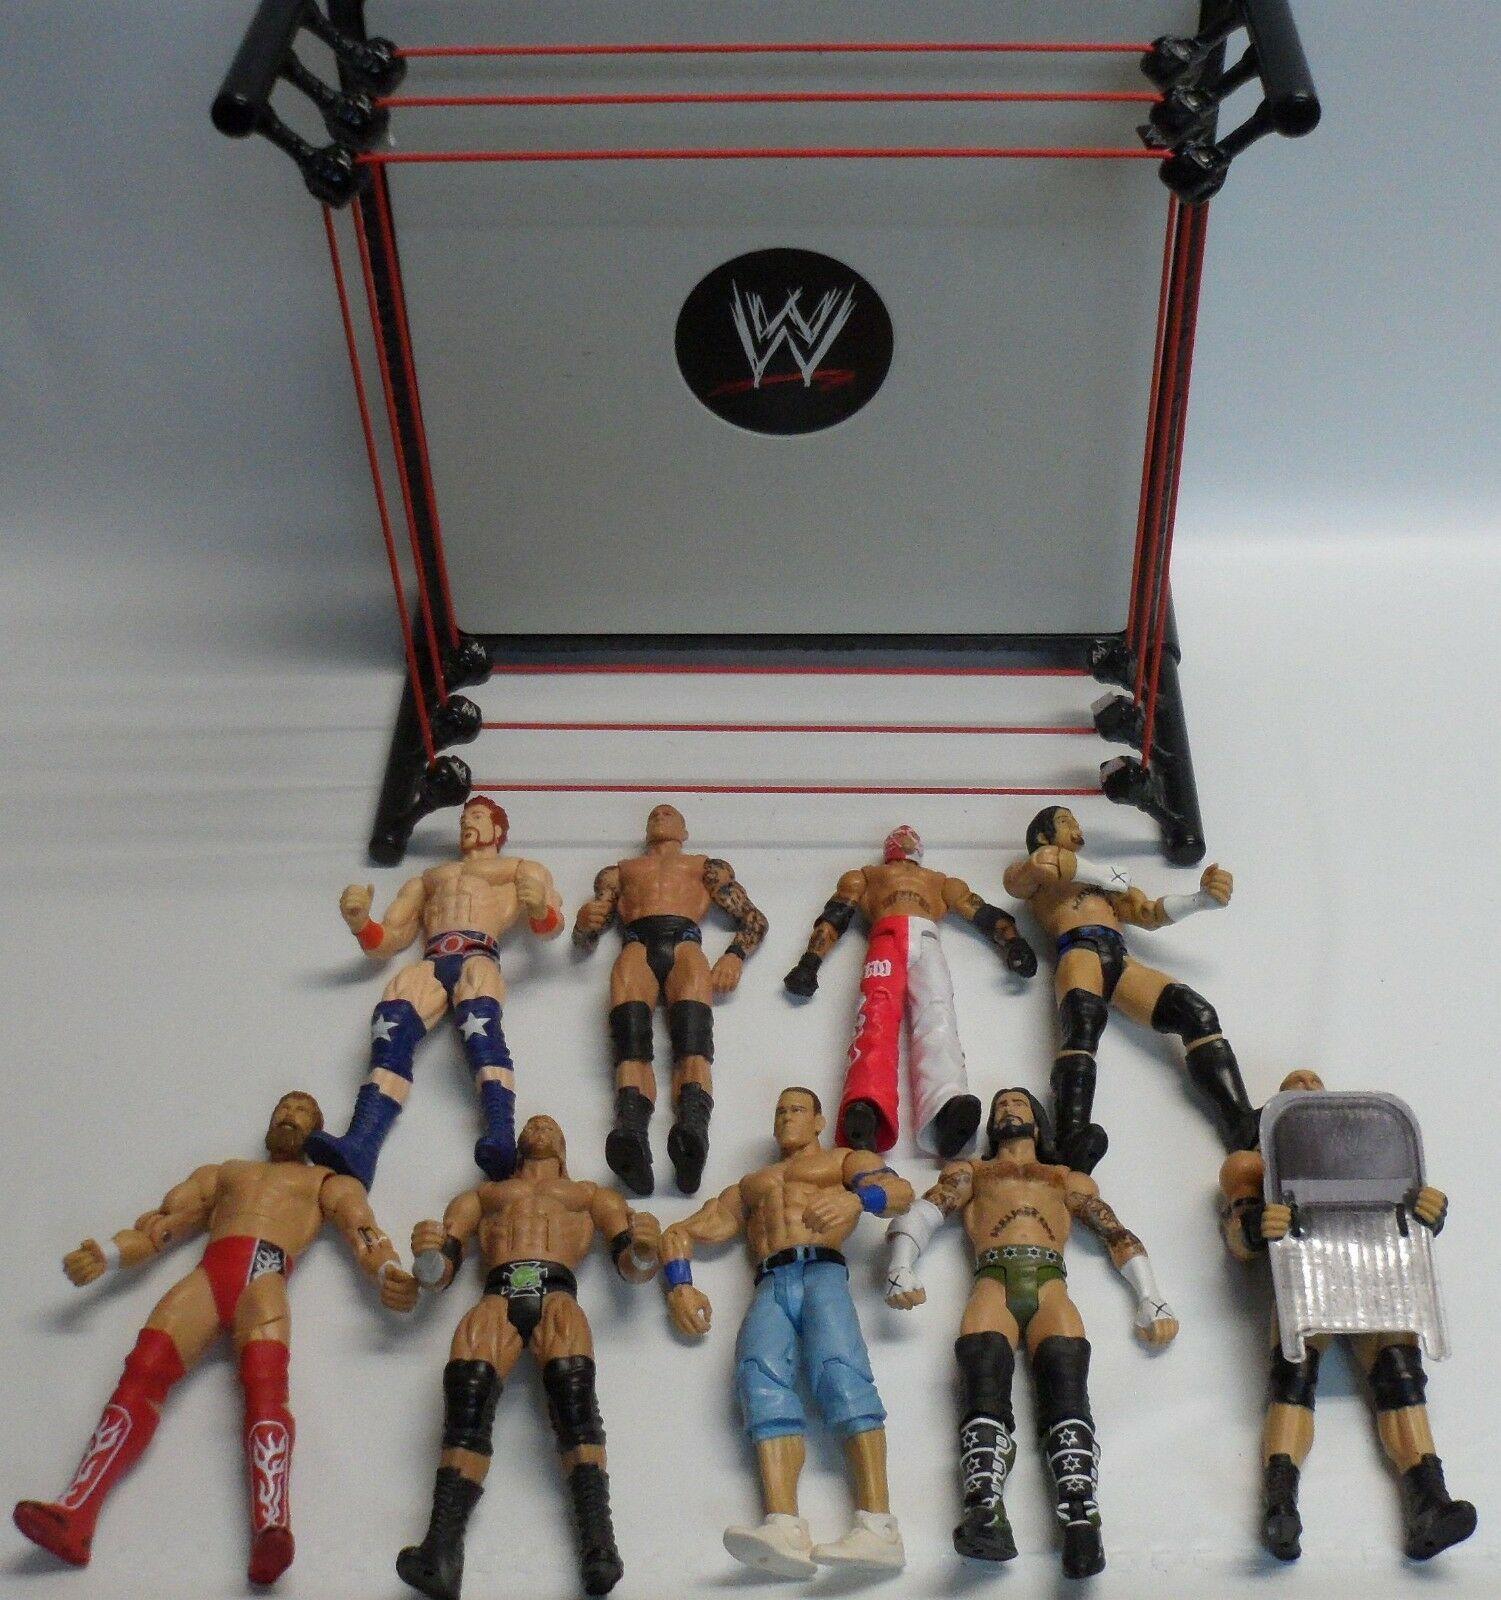 WWE Mattel RAW Wrestling Ring With WWE Lot Of 9 Mattel Figures Rey Mysterio Cena